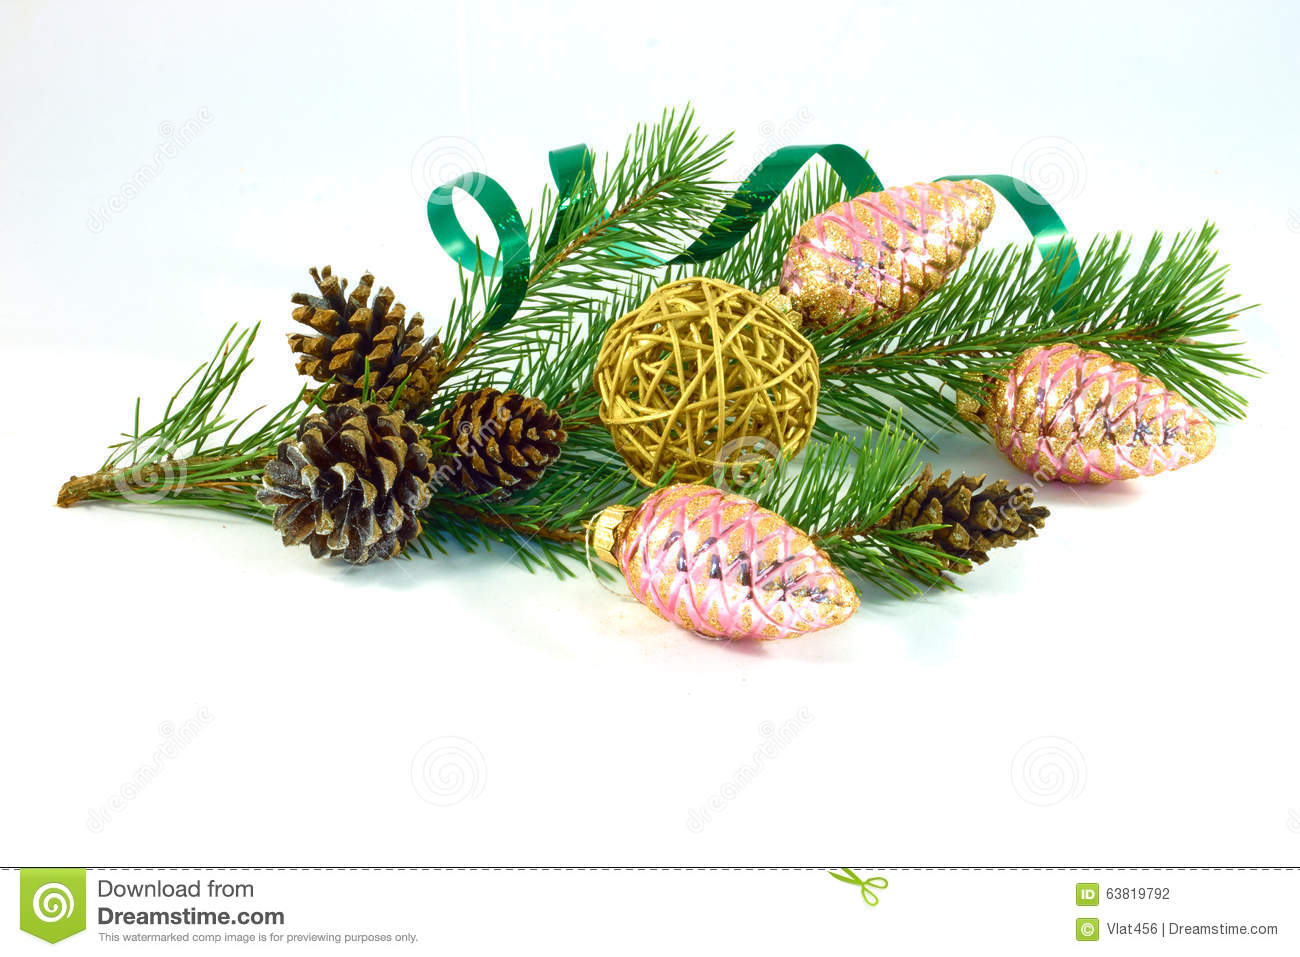 pine branch with pine cones and christmas decorations - Decorating Large Pine Cones For Christmas